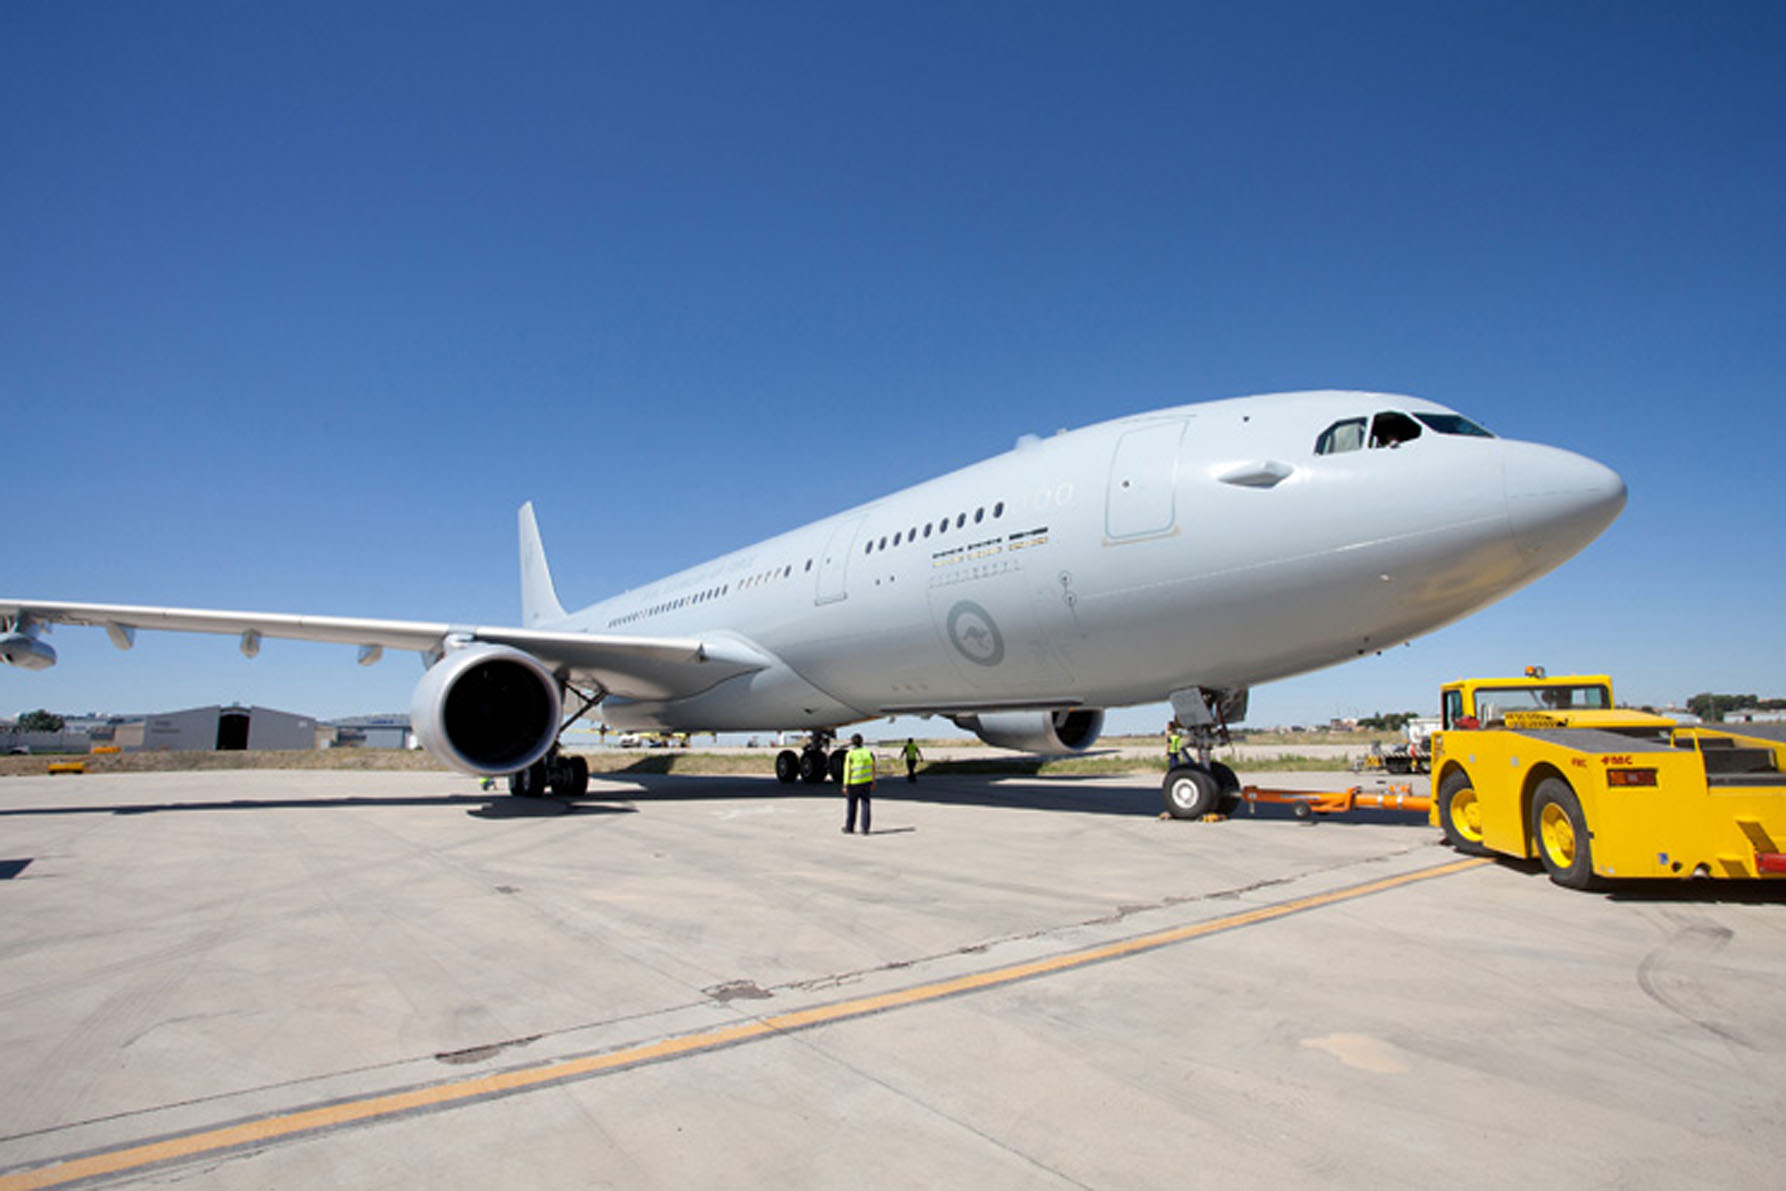 RAAF receives fourth A330 MRTT